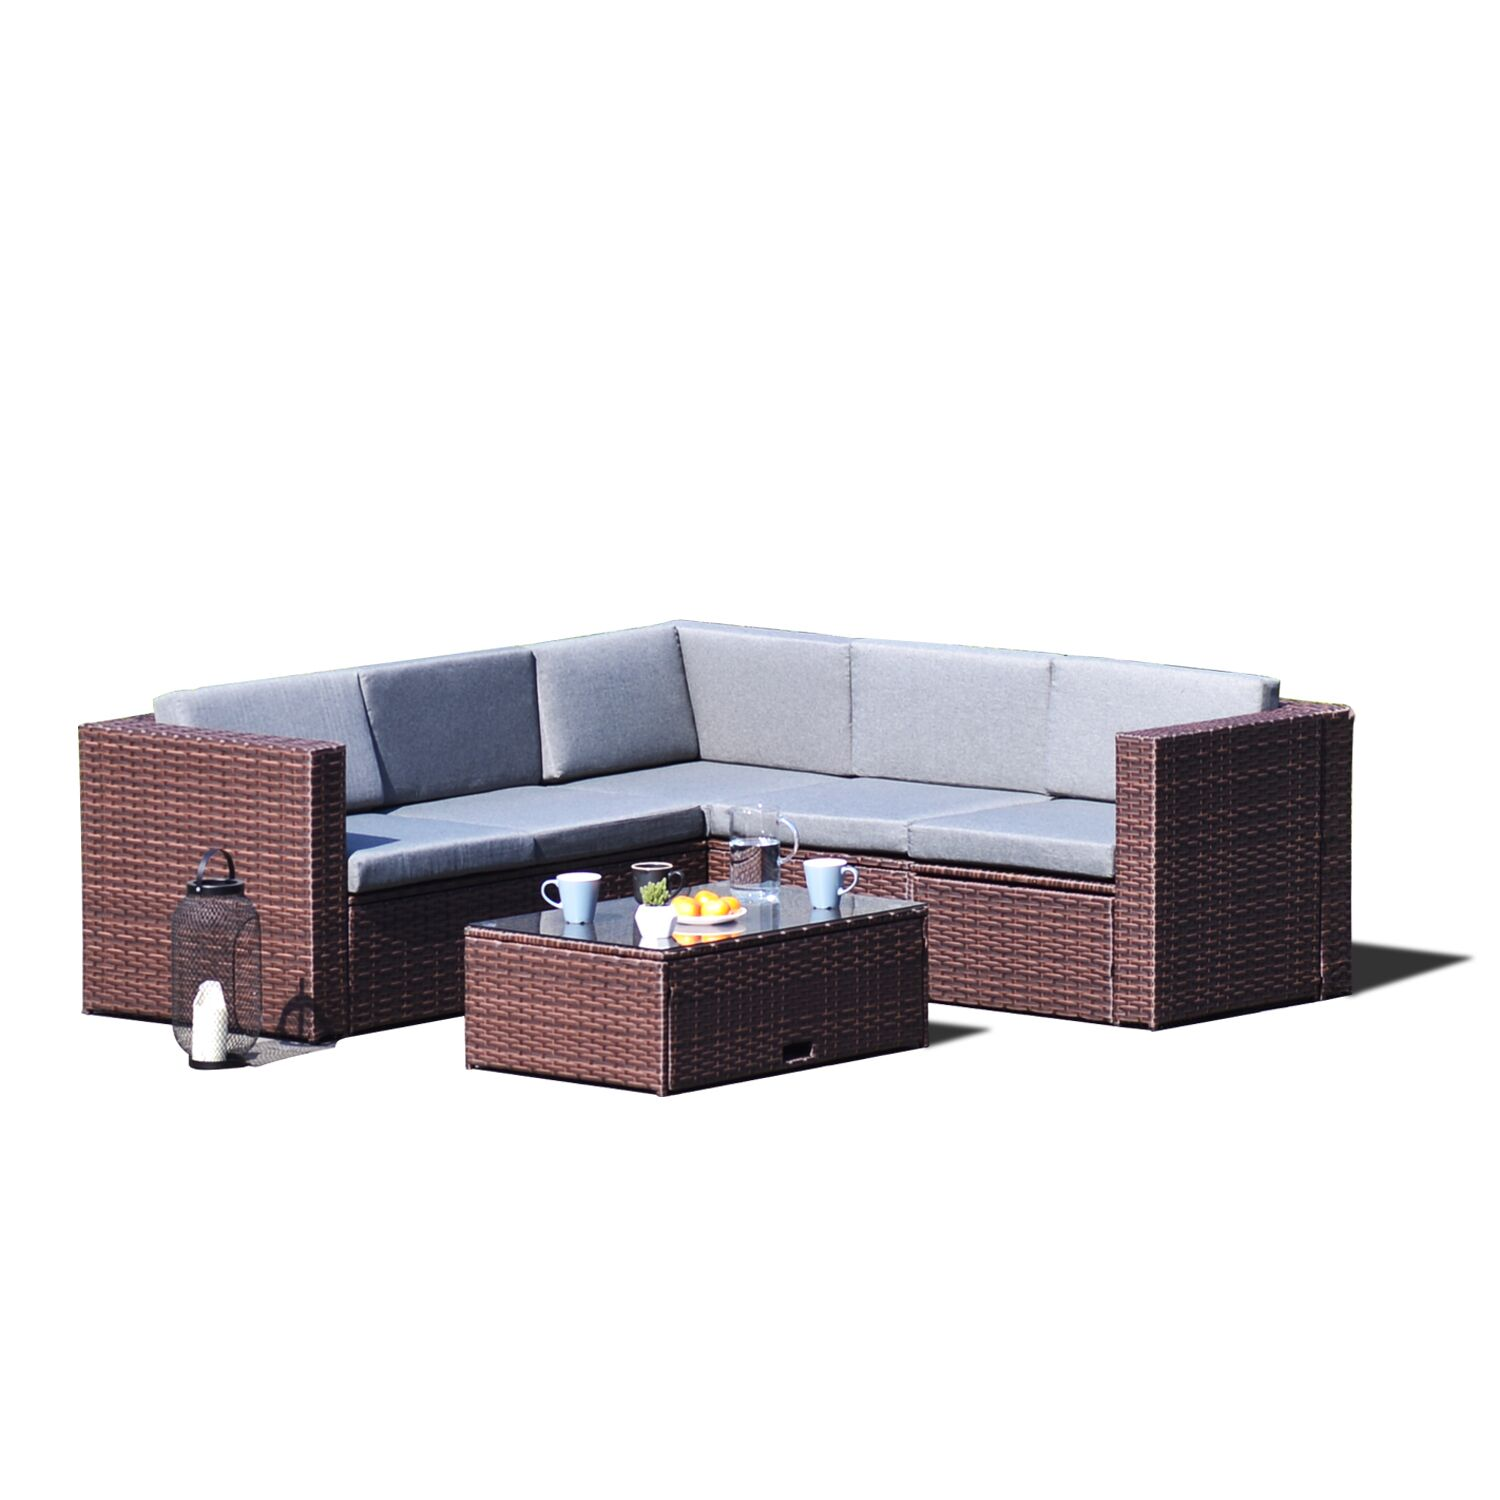 Fishel 4 Piece Rattan Sectional Set with Cushion Frame Color: Brown